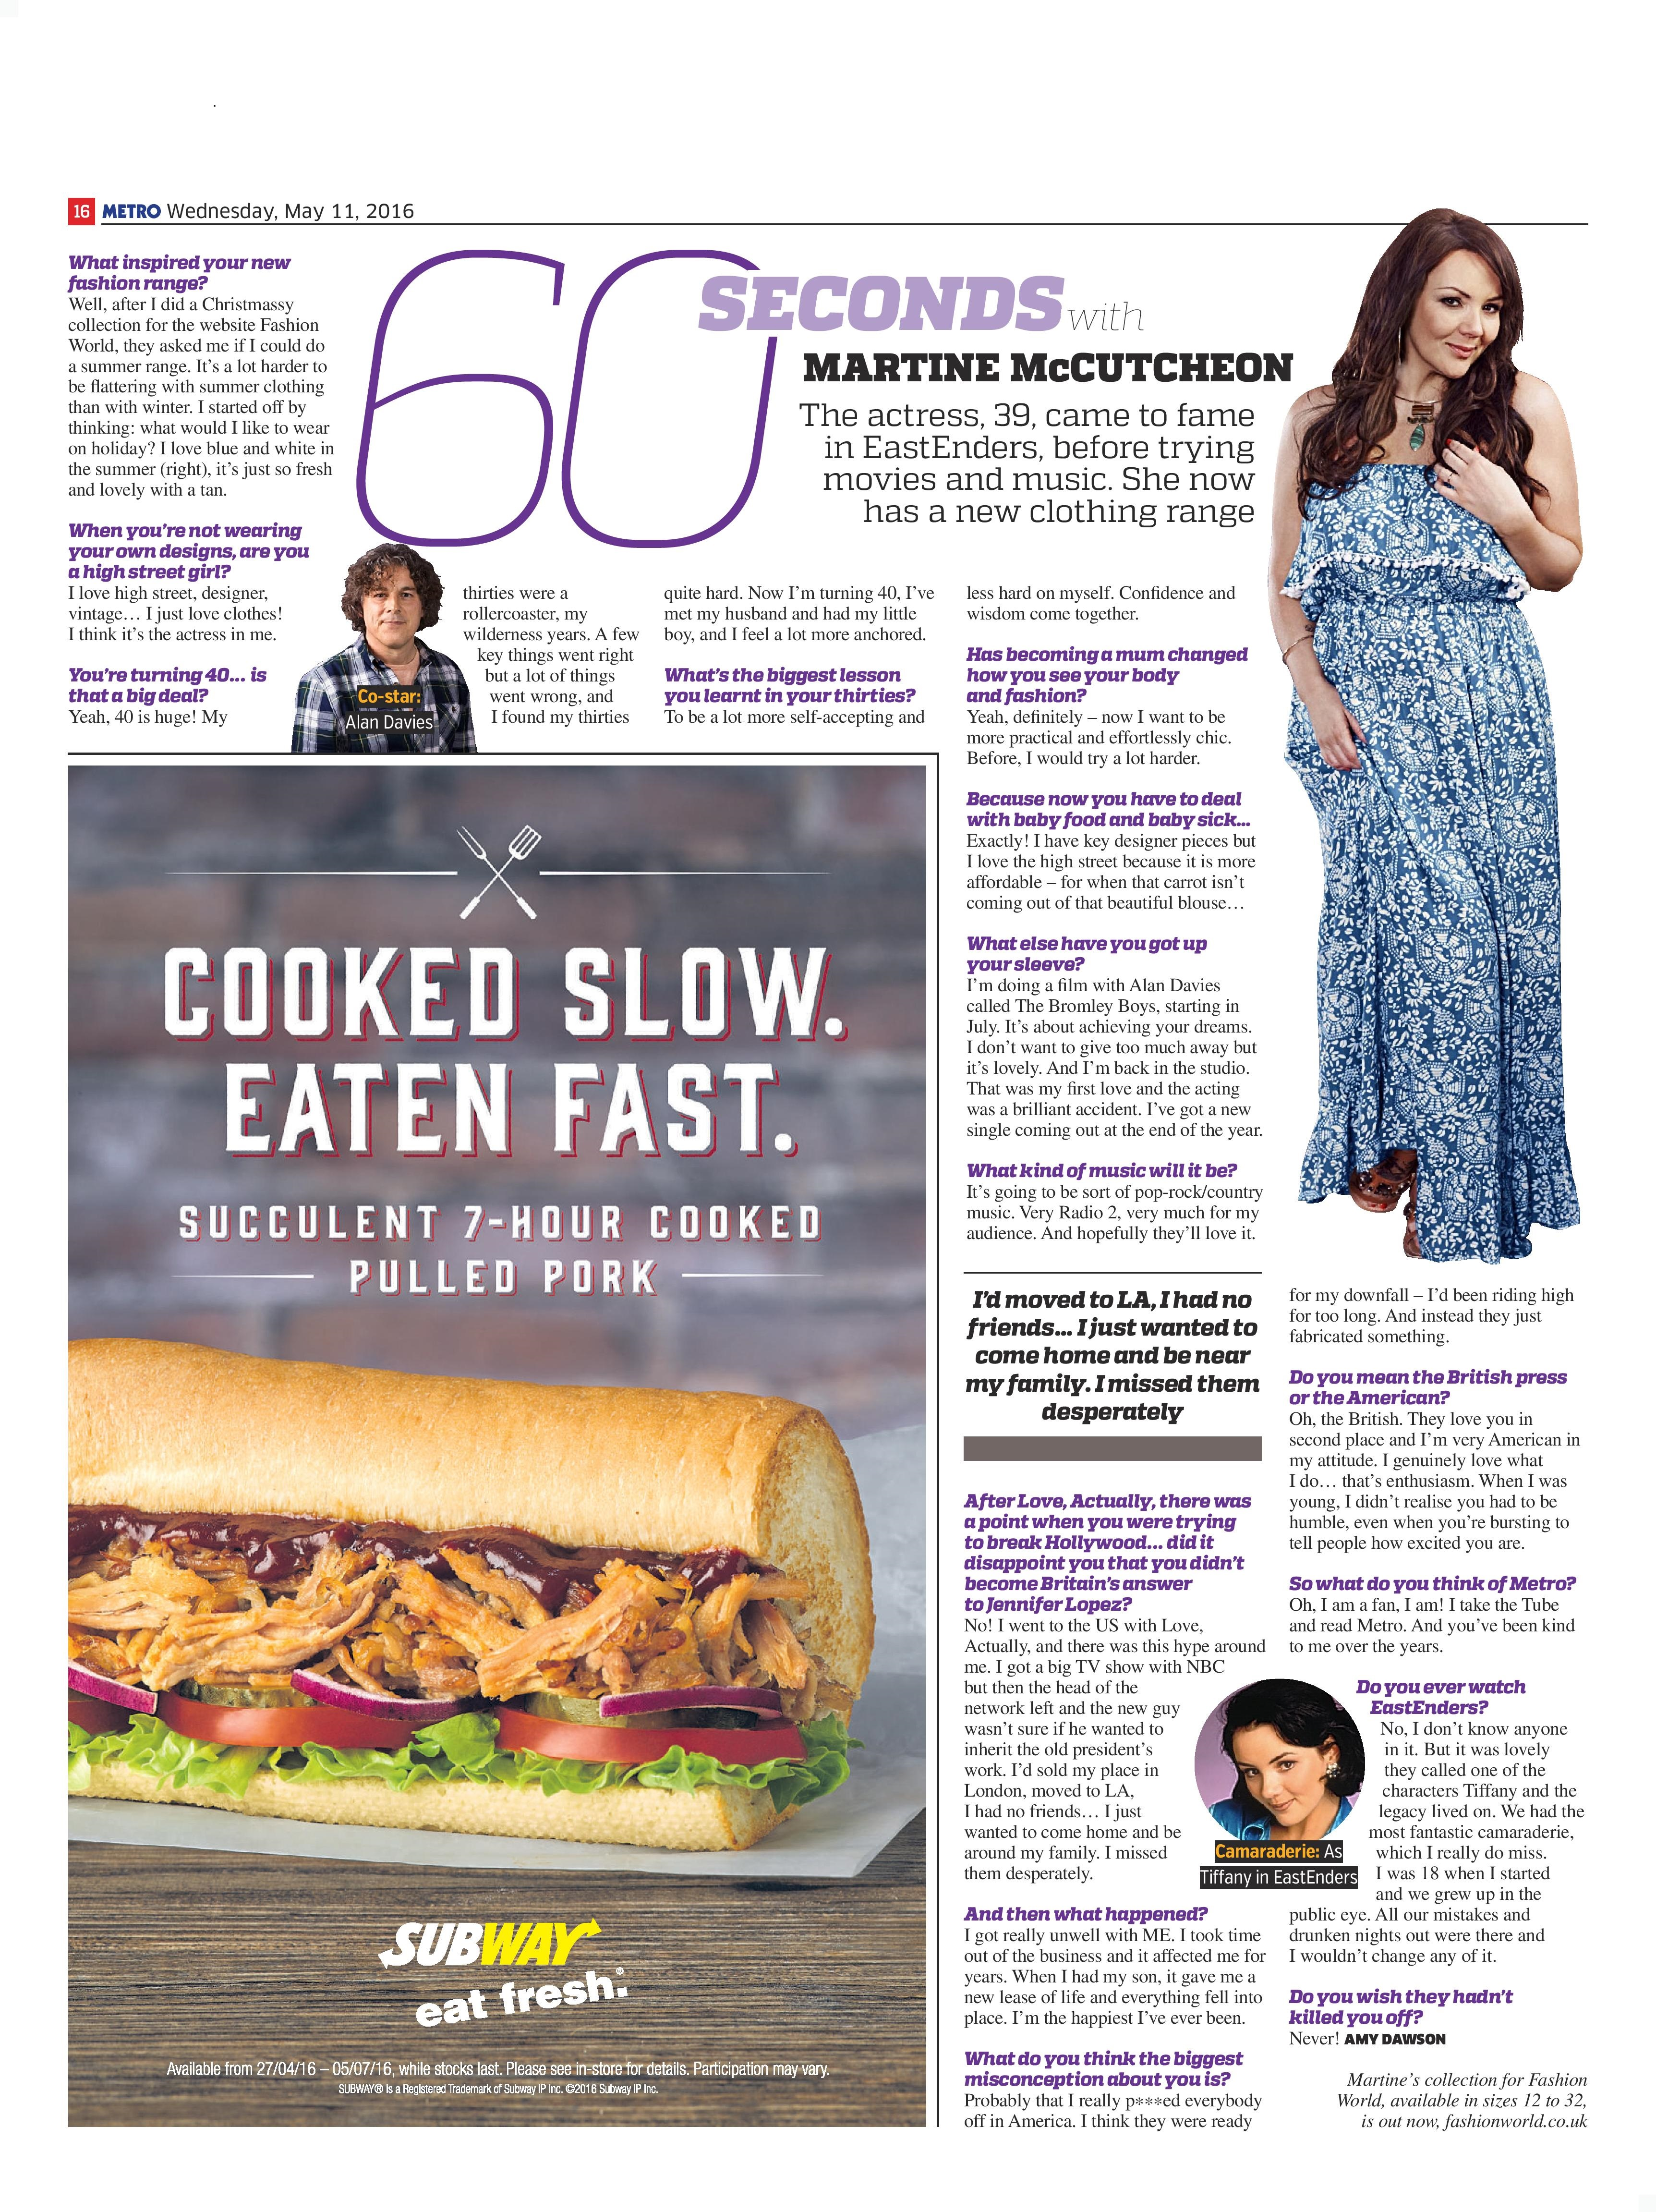 60 Seconds With…Martine McCutcheon (Metro, 11th May 2016)